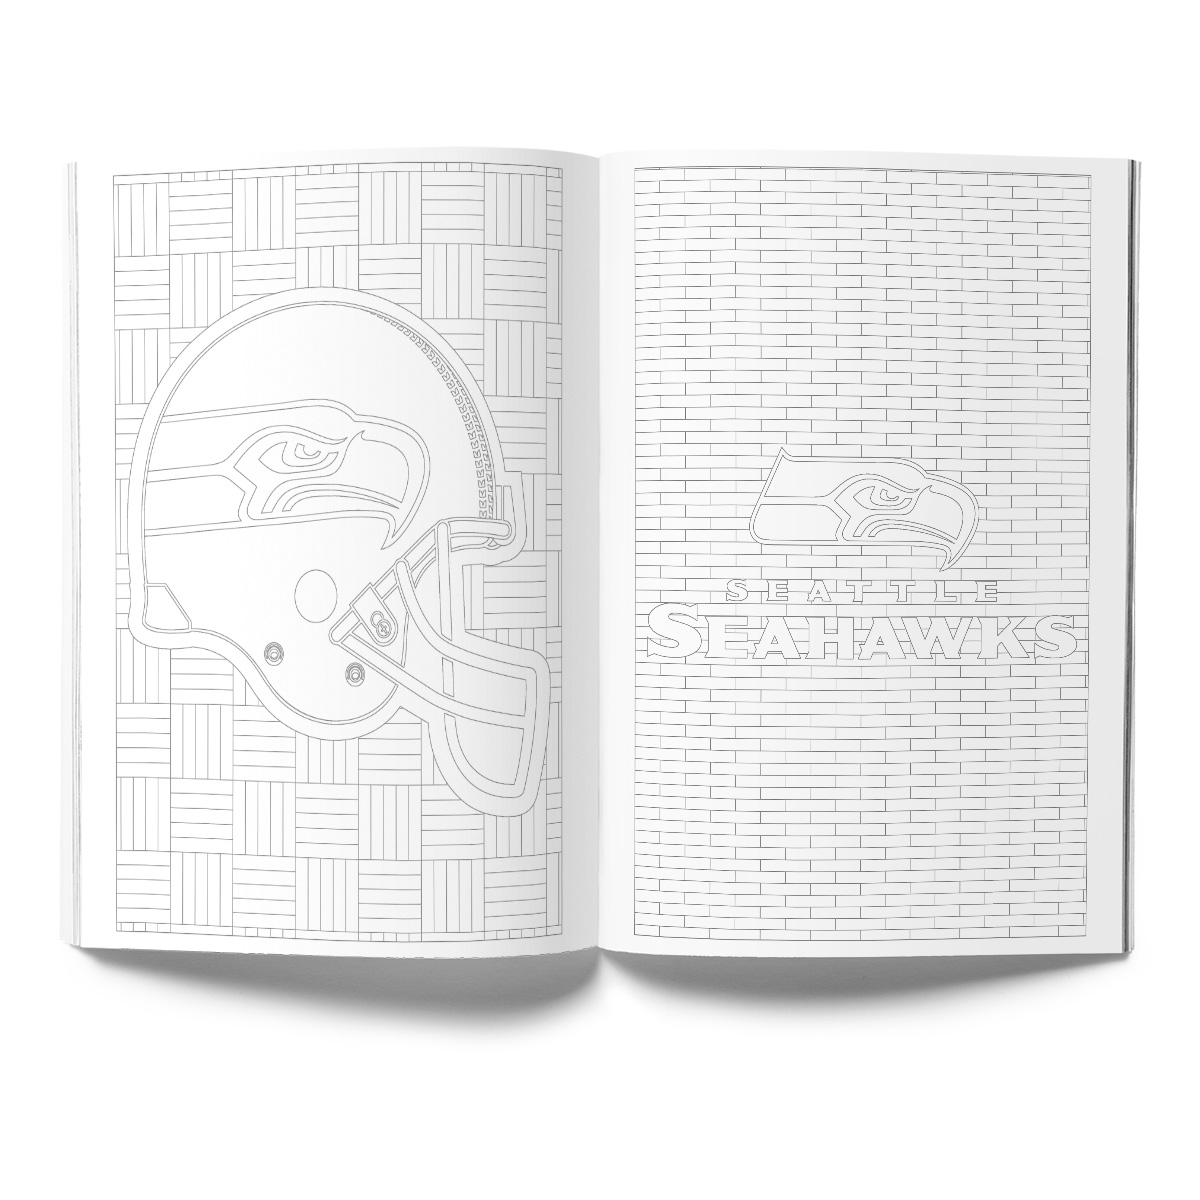 Seattle Seahawks Adult Coloring Book